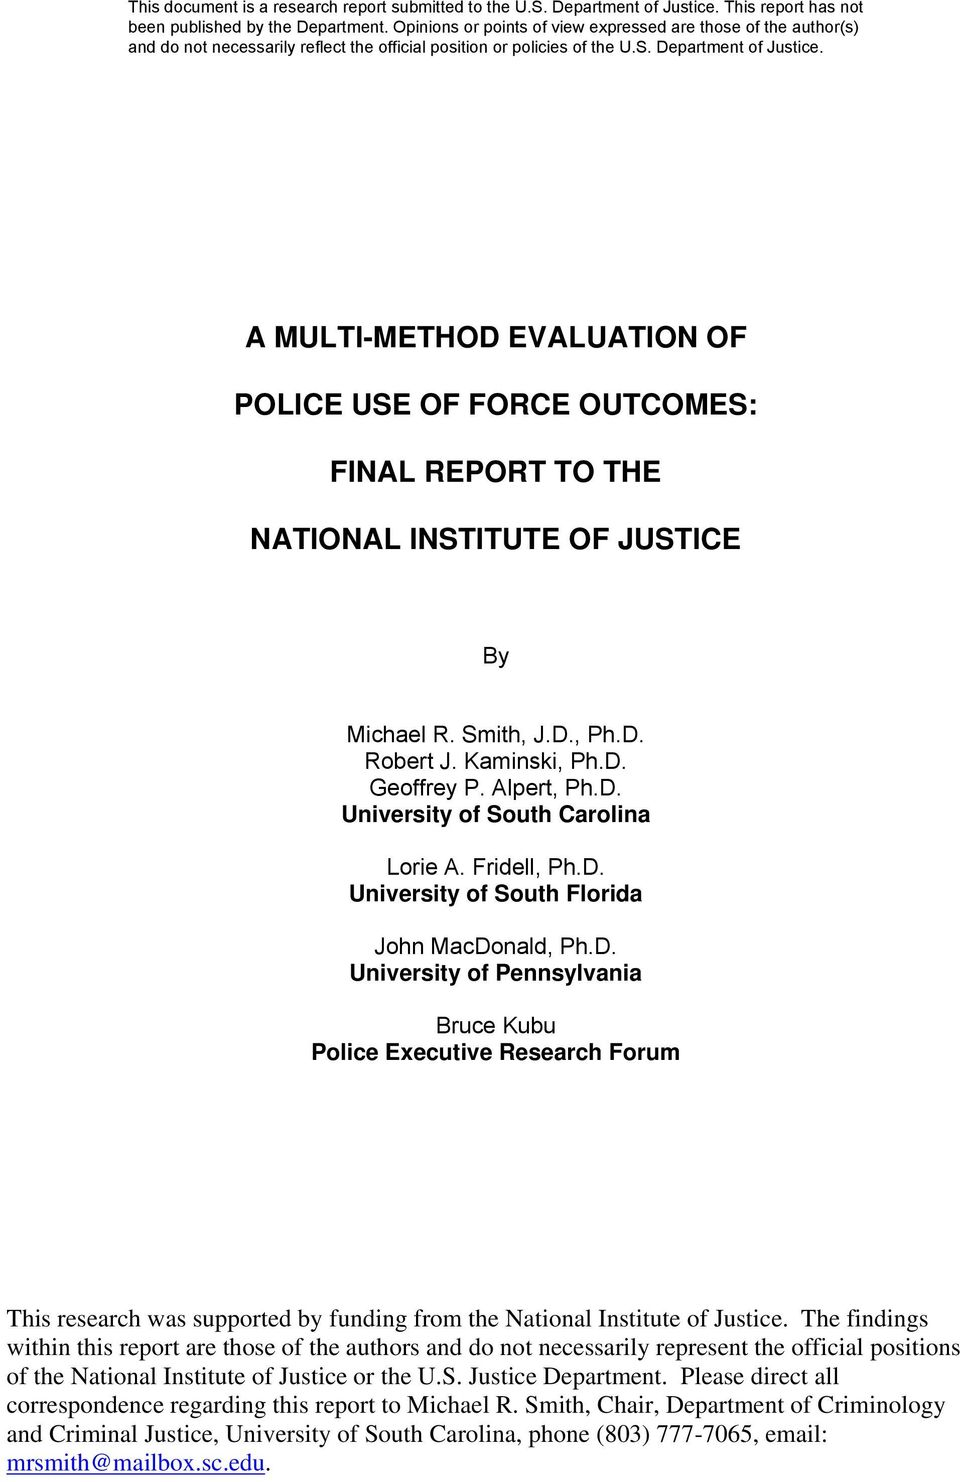 The findings within this report are those of the authors and do not necessarily represent the official positions of the National Institute of Justice or the U.S. Justice Department.